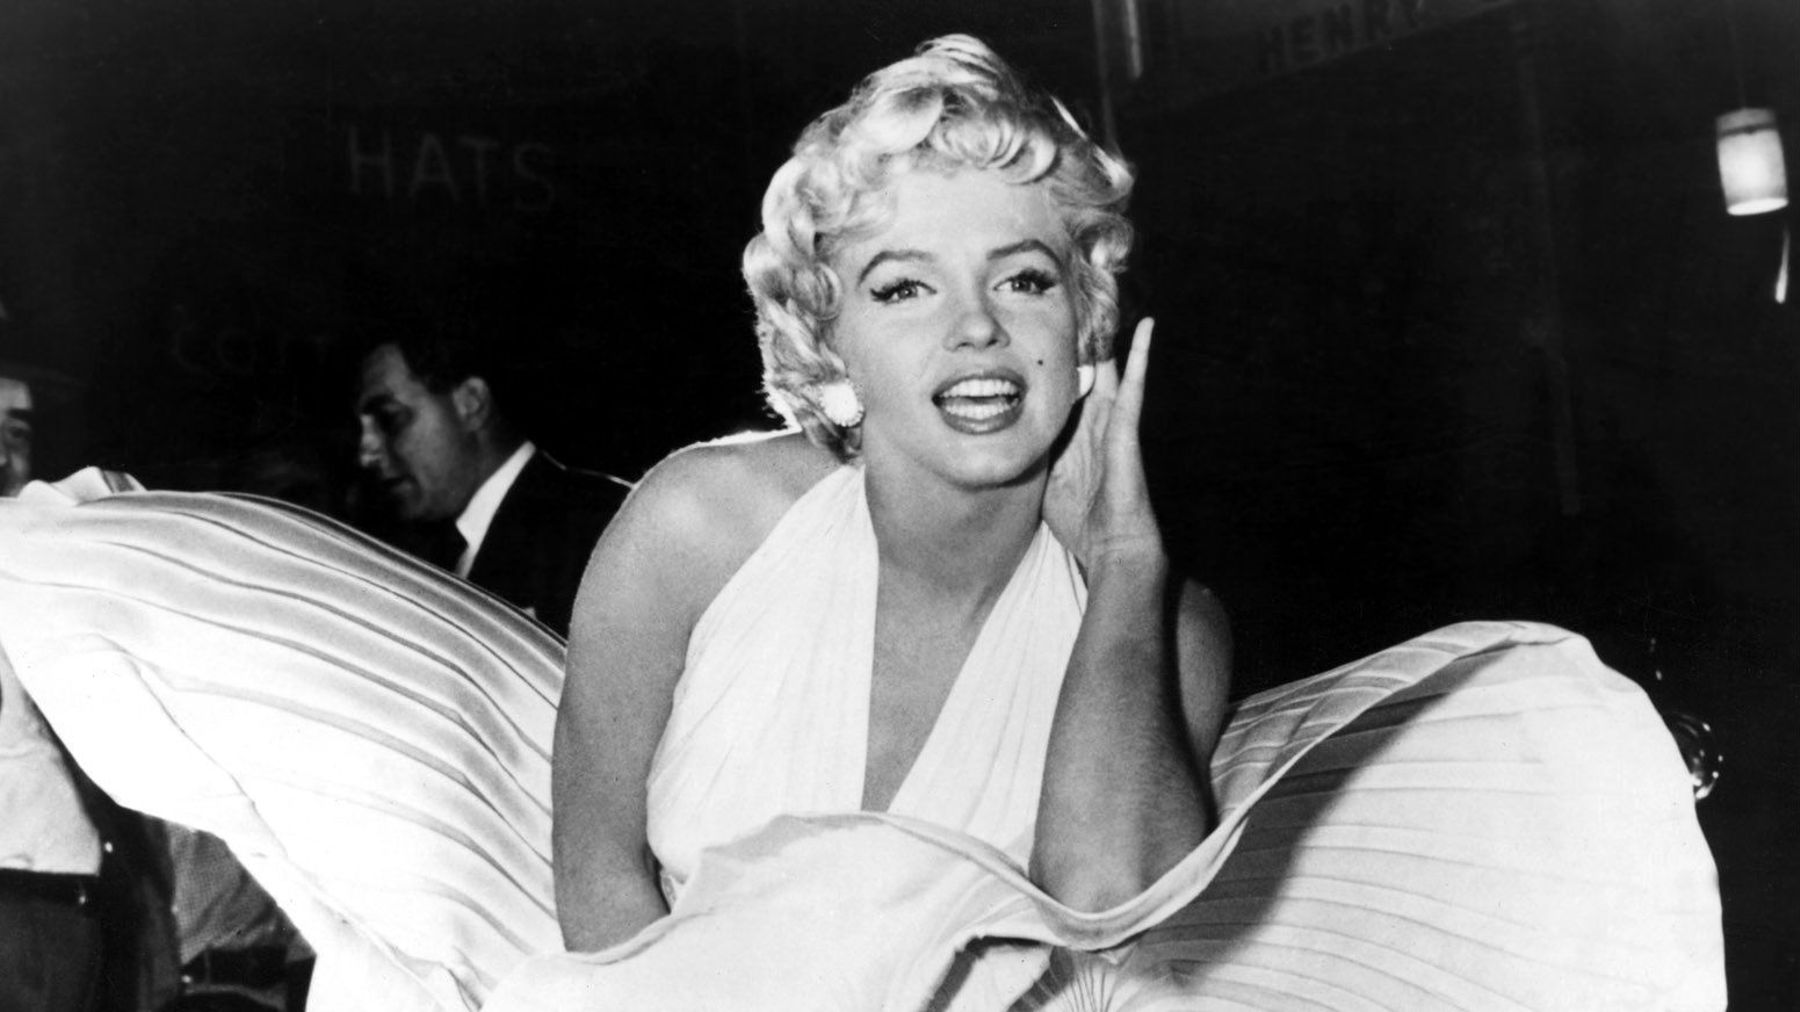 af1b99f42d0 Marilyn Monroe  20 Of Her Most Iconic Style Moments